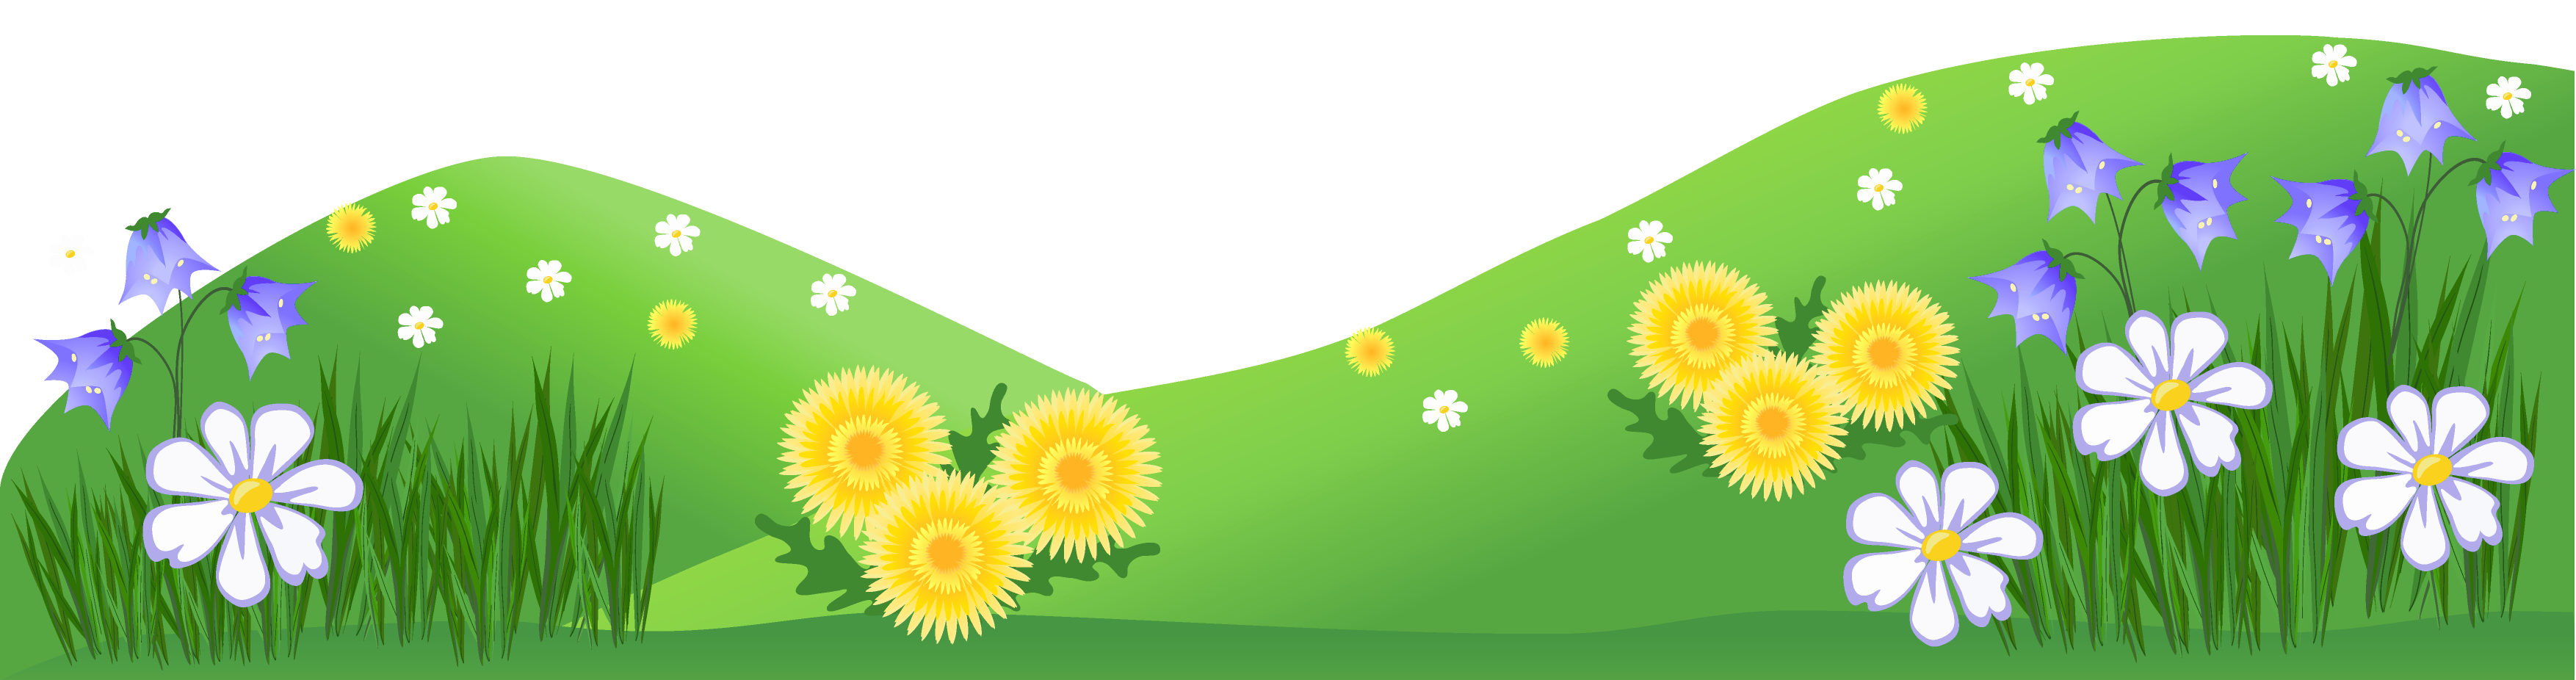 Grass ground with flowers. Clipart cow flower